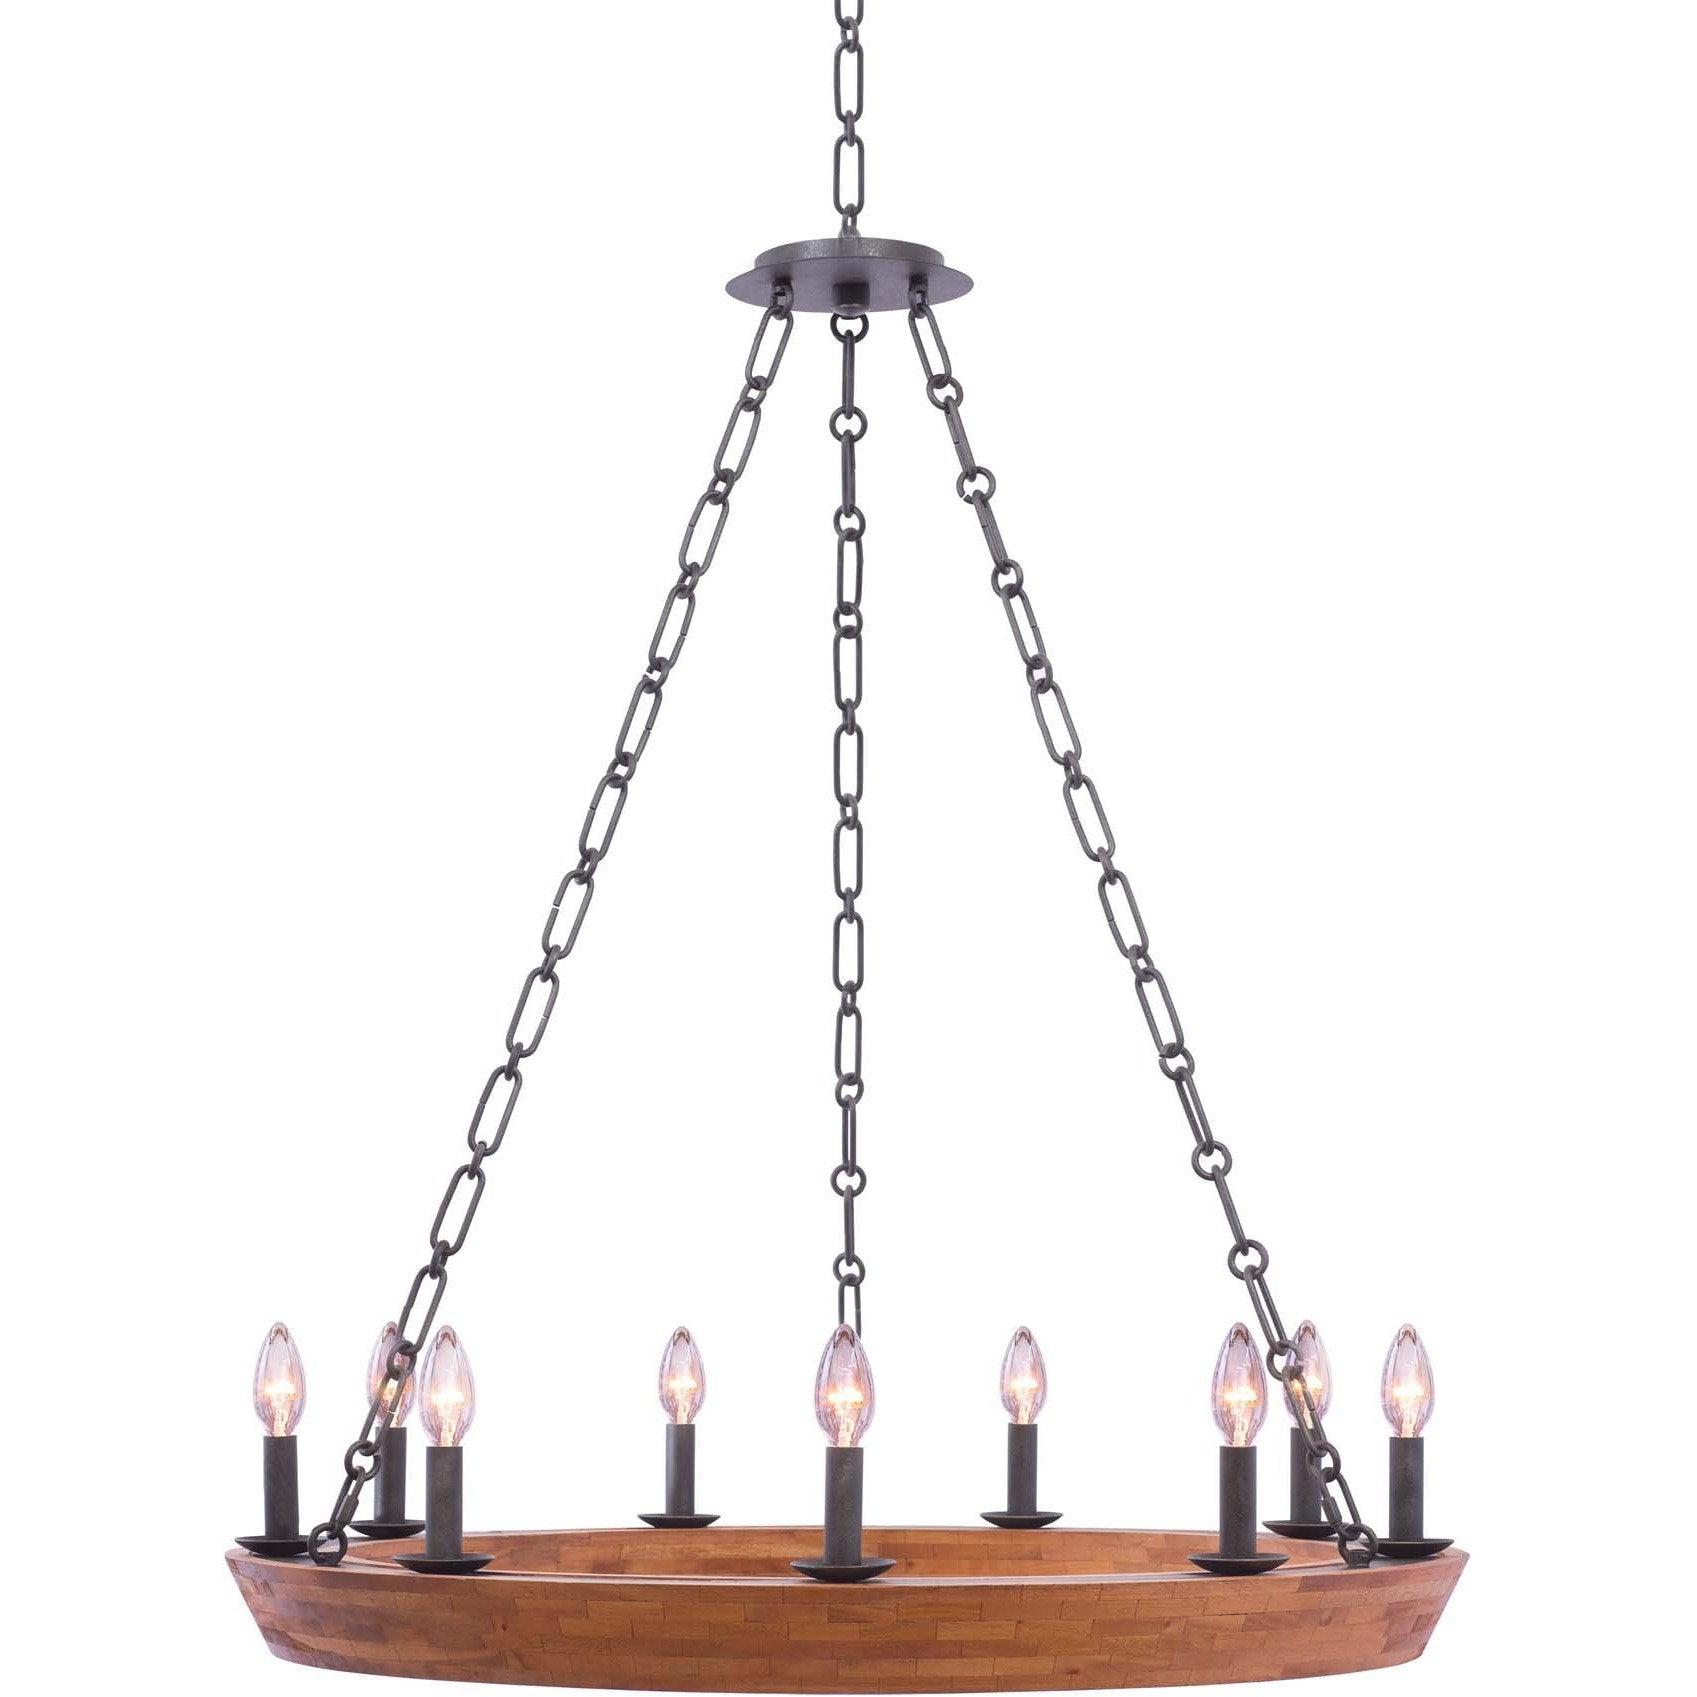 Kalco Lighting Chandeliers Black Iron Lansdale 9 Light Chandelier By Kalco Lighting 505555